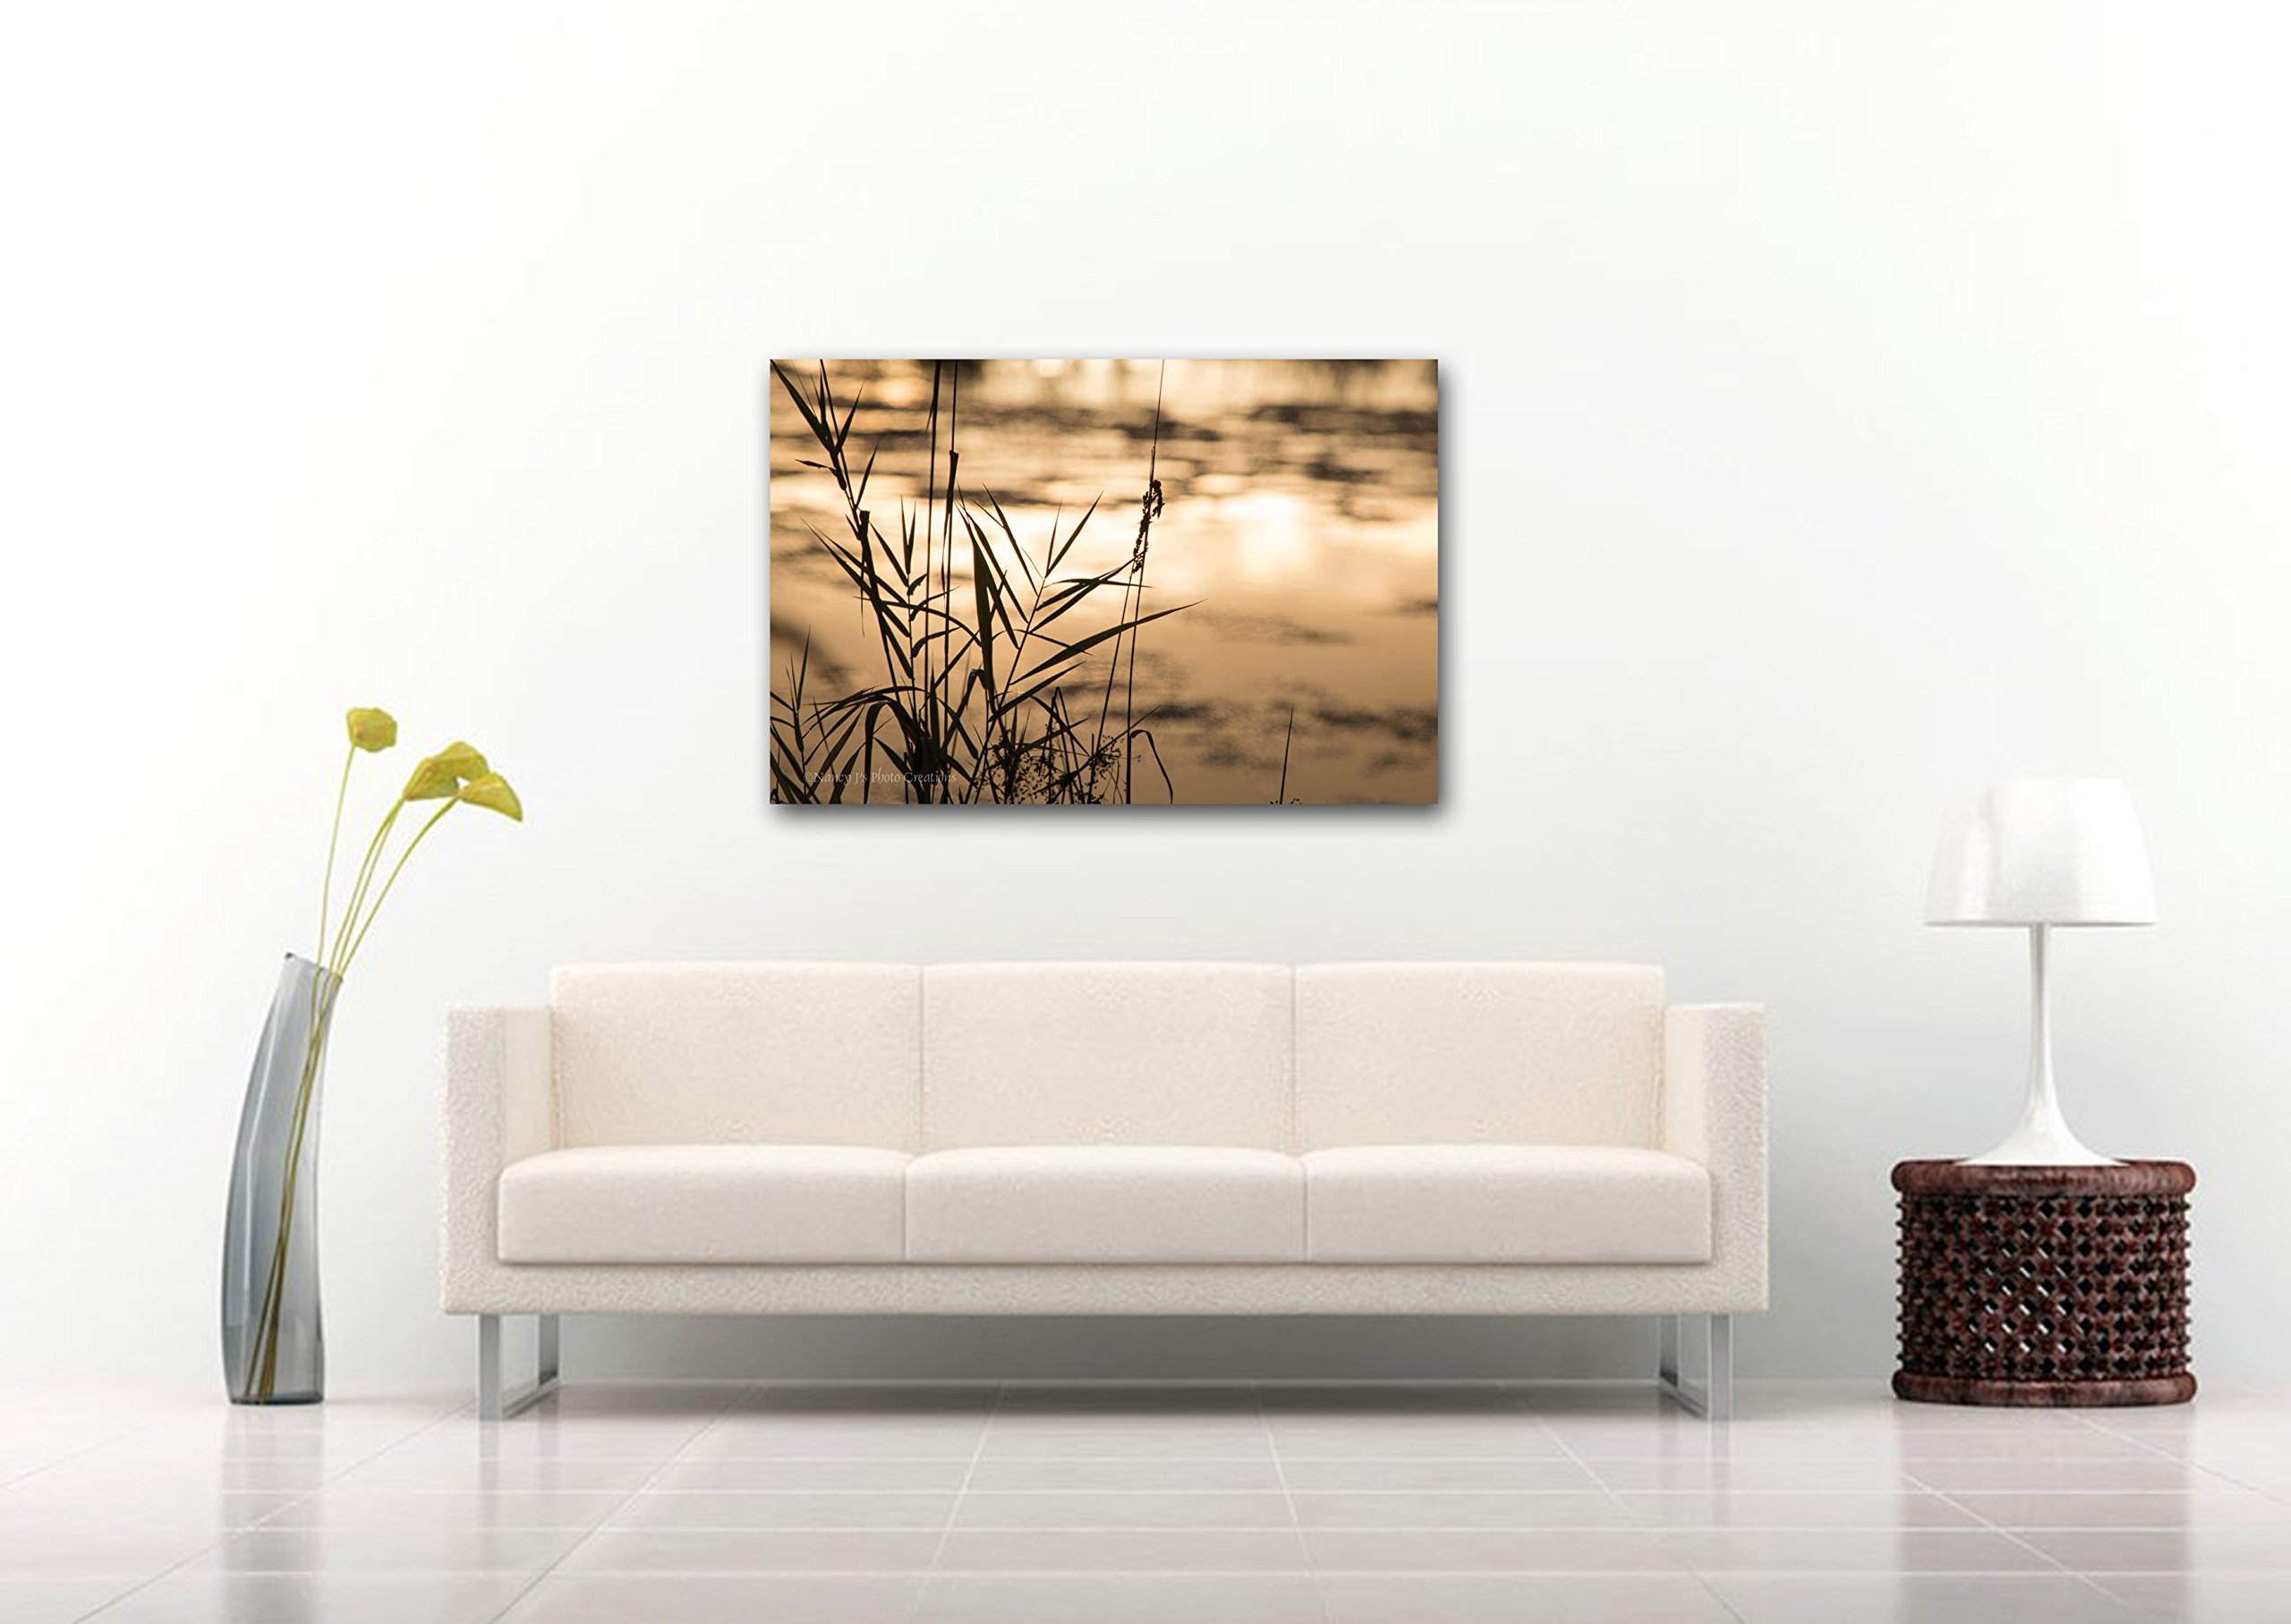 Monochrome CANVAS Print He Cares about You Christian Wall Art Nature Photography Religious Gift Sunset Home Decor Bible Verse Typography Zen Photo Ready to Hang 8x10 8x12 11x14 12x18 16x20 16x24 20x30